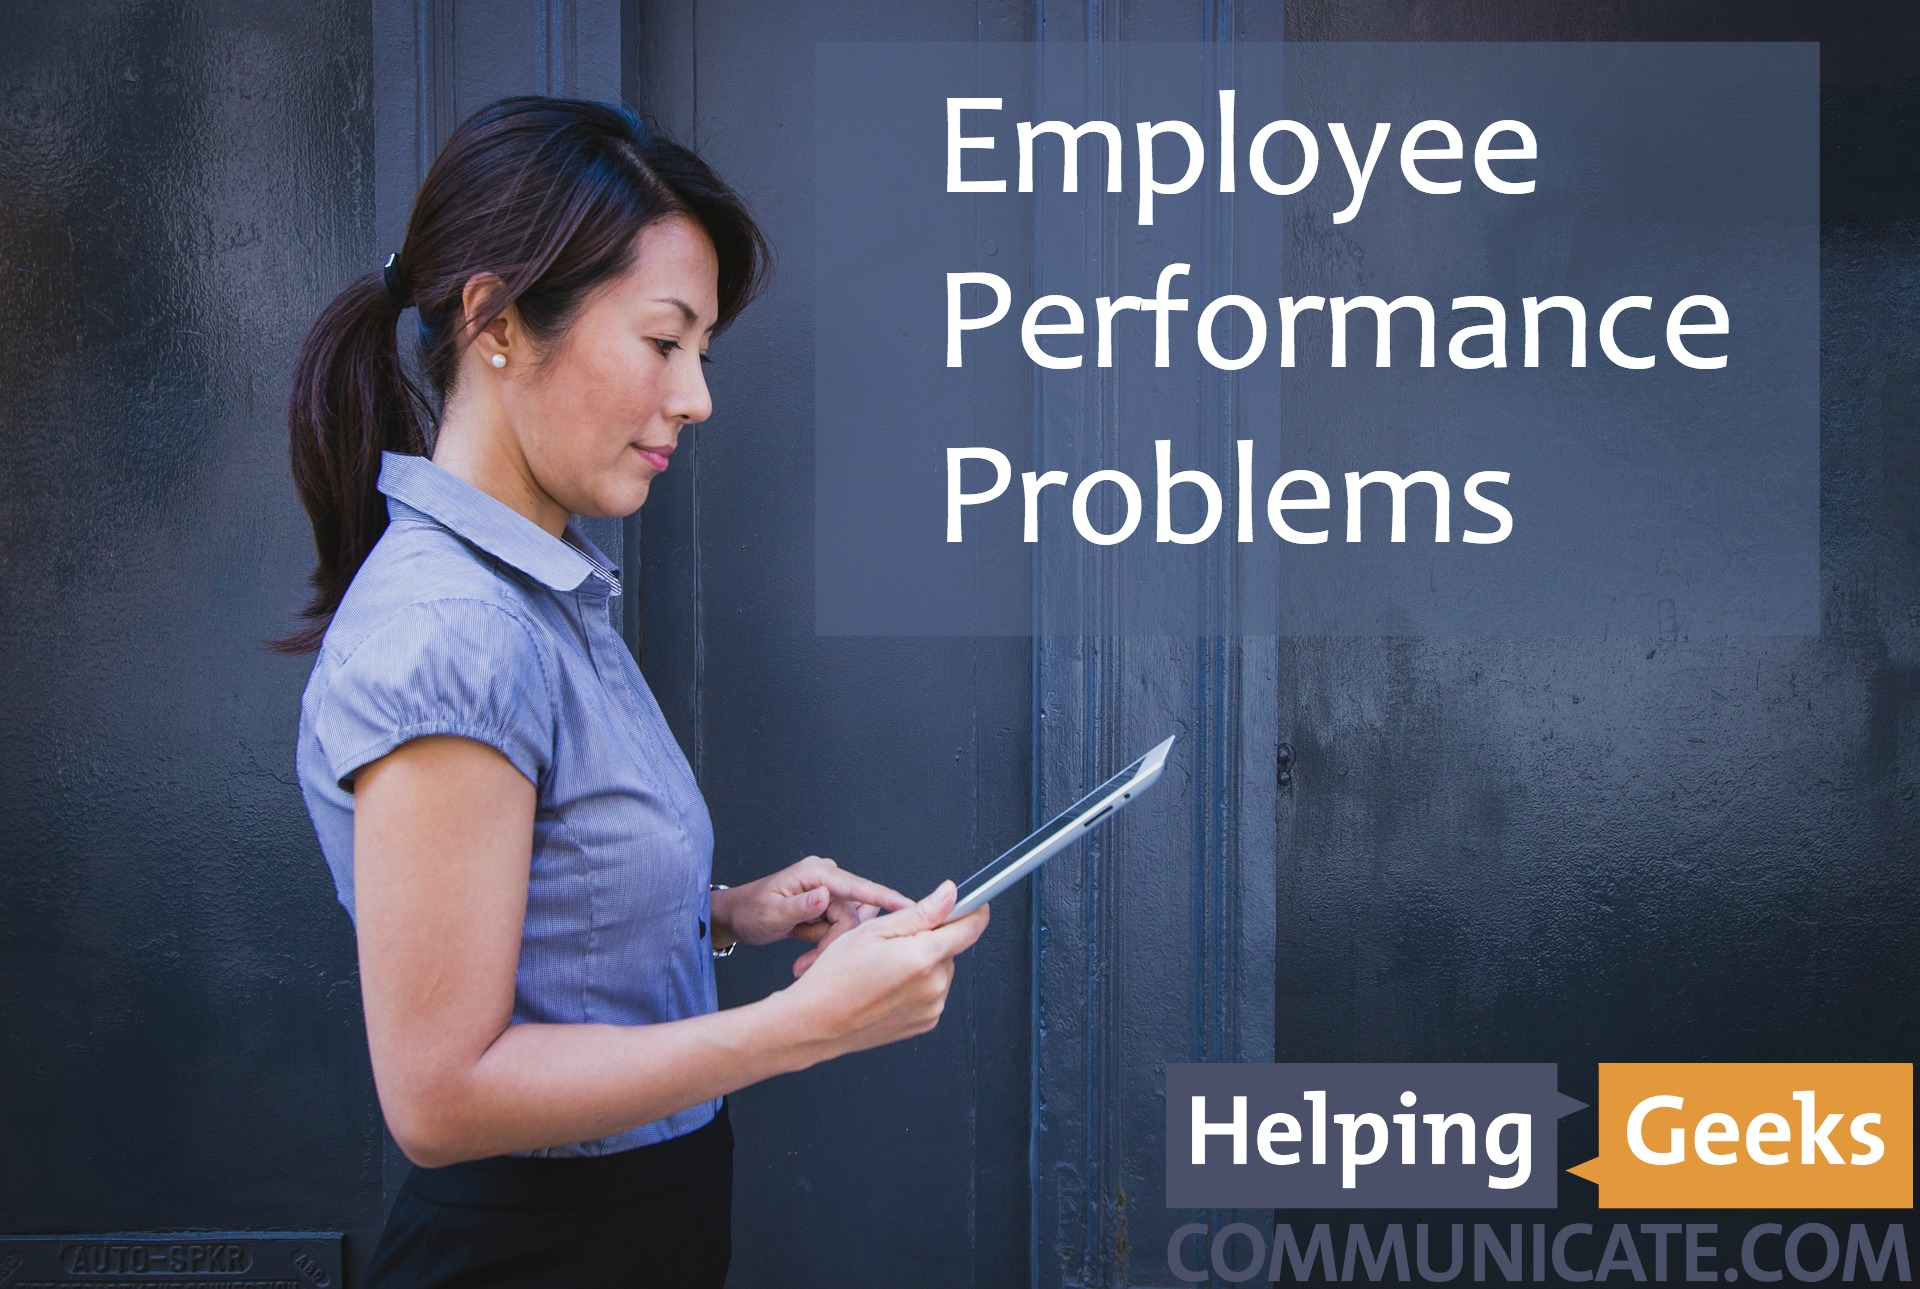 employee performance problems and how to have effective 1-1 meetings - sea 2ep 10